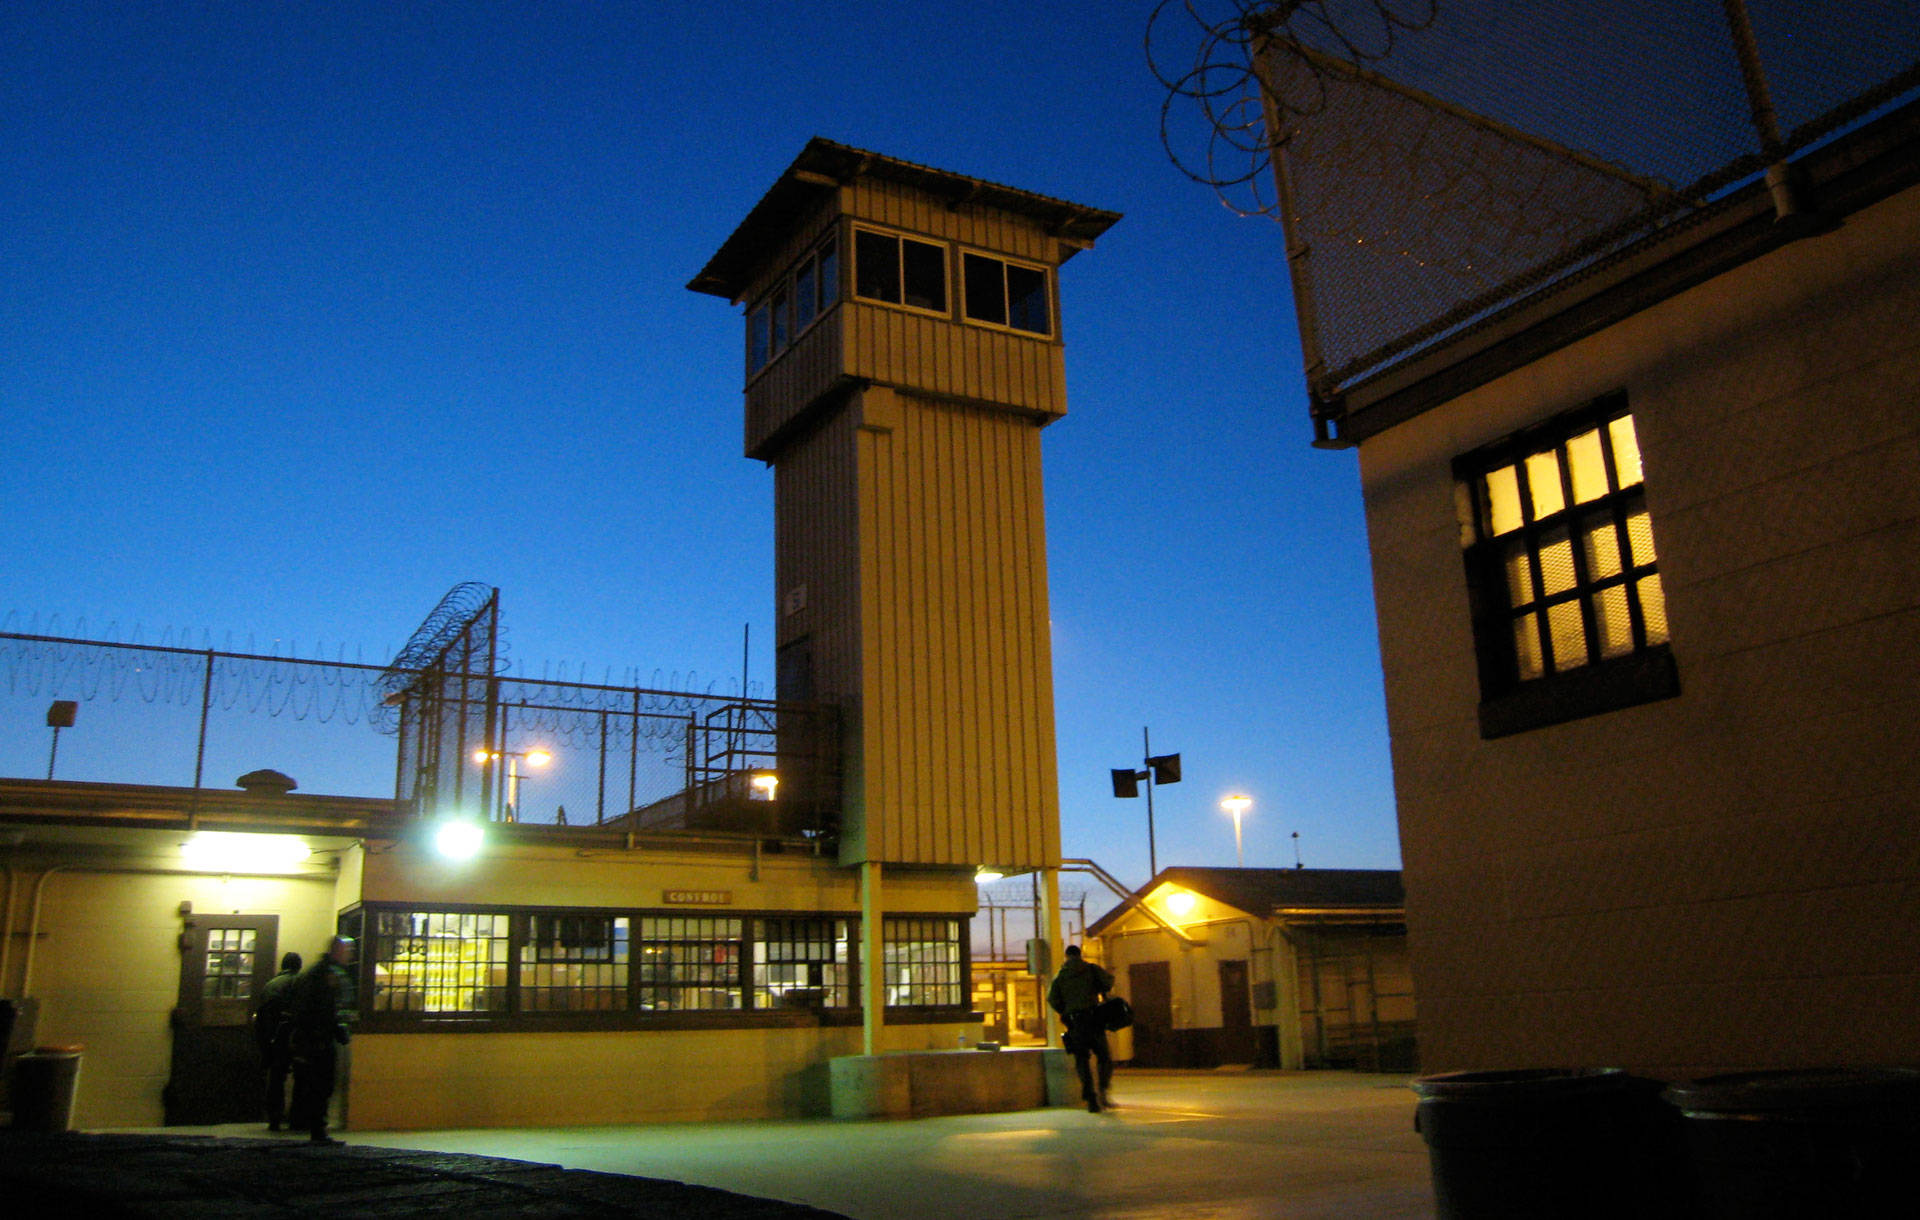 The Correctional Training Facility in Soledad, California, commonly known as 'Soledad.' Photo: Michelle Gaudet